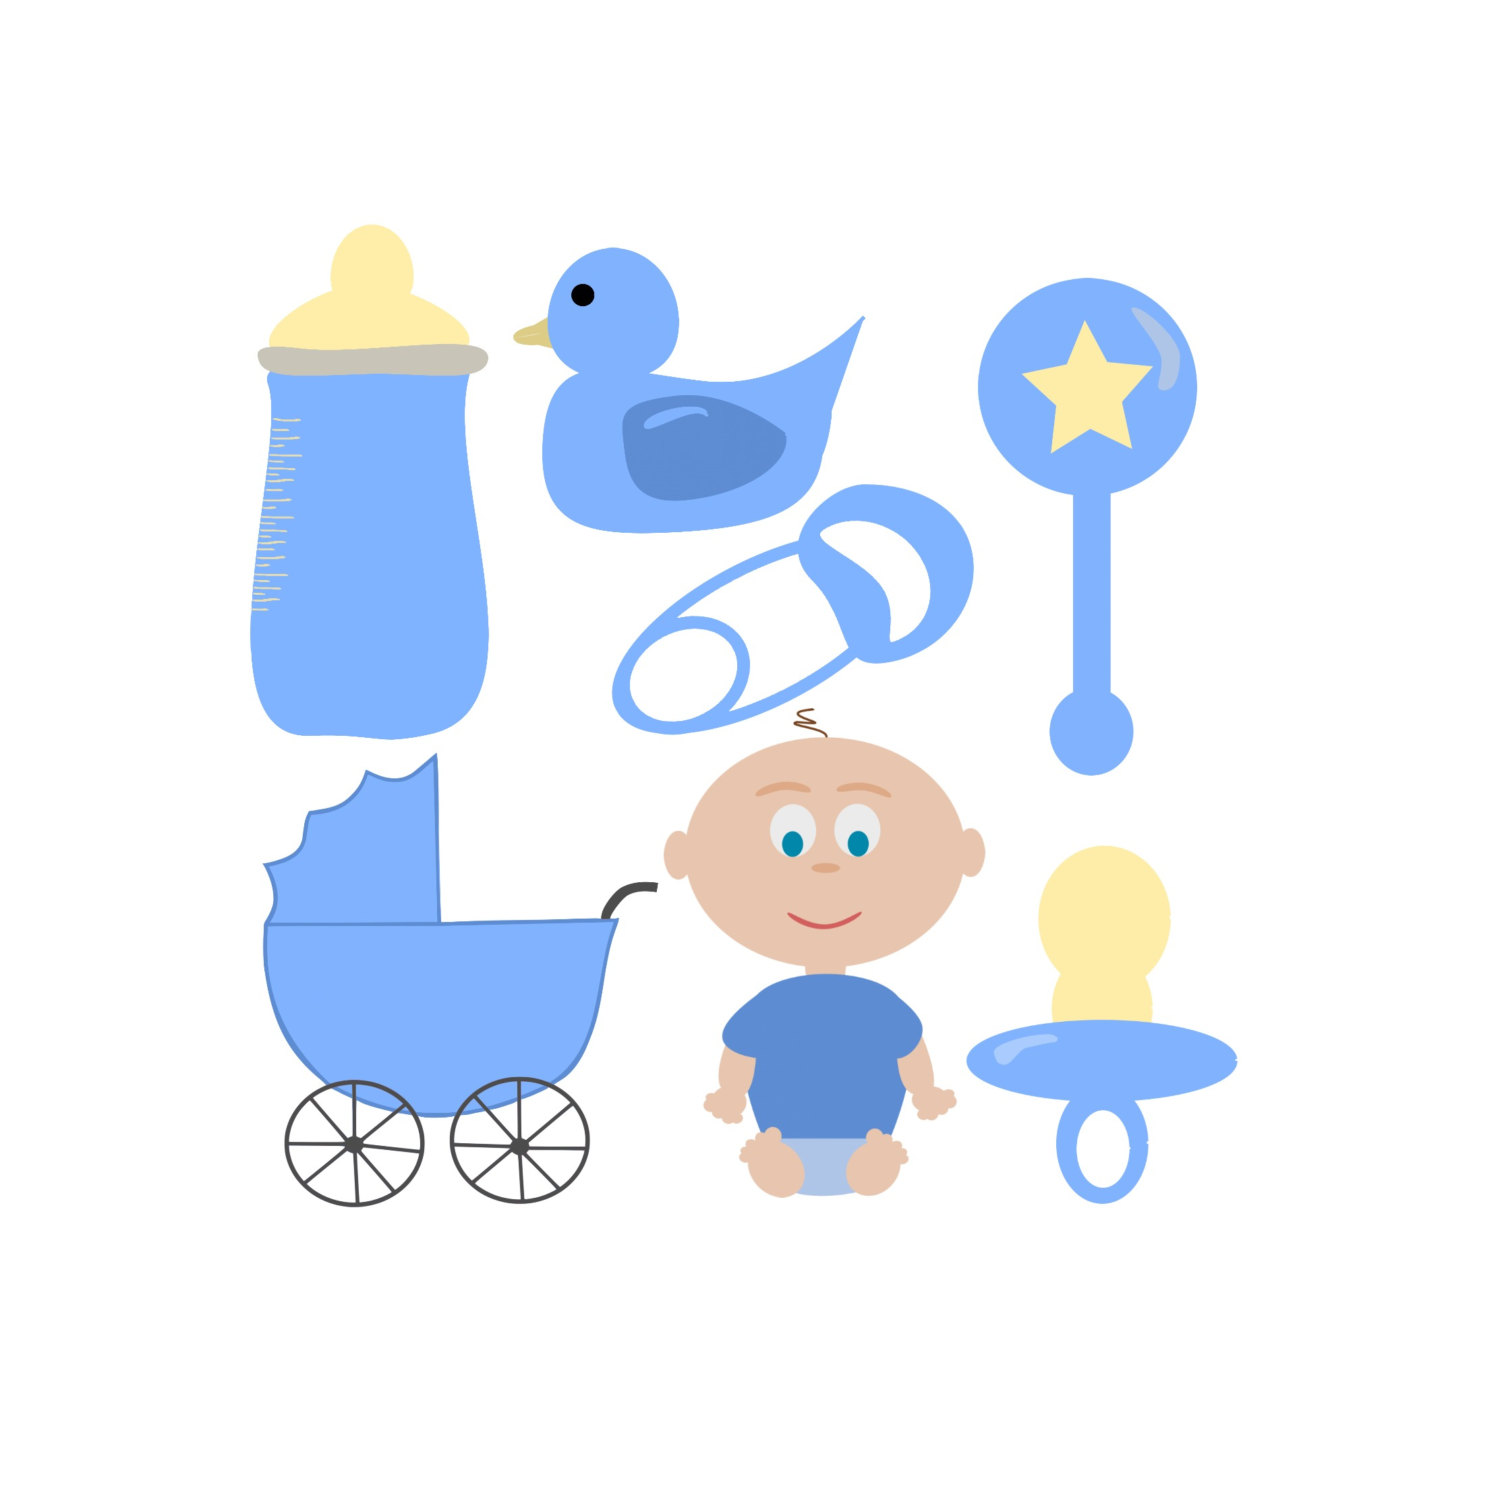 Free Baby Boy Graphics, Download Free Clip Art, Free Clip Art on ... svg free stock